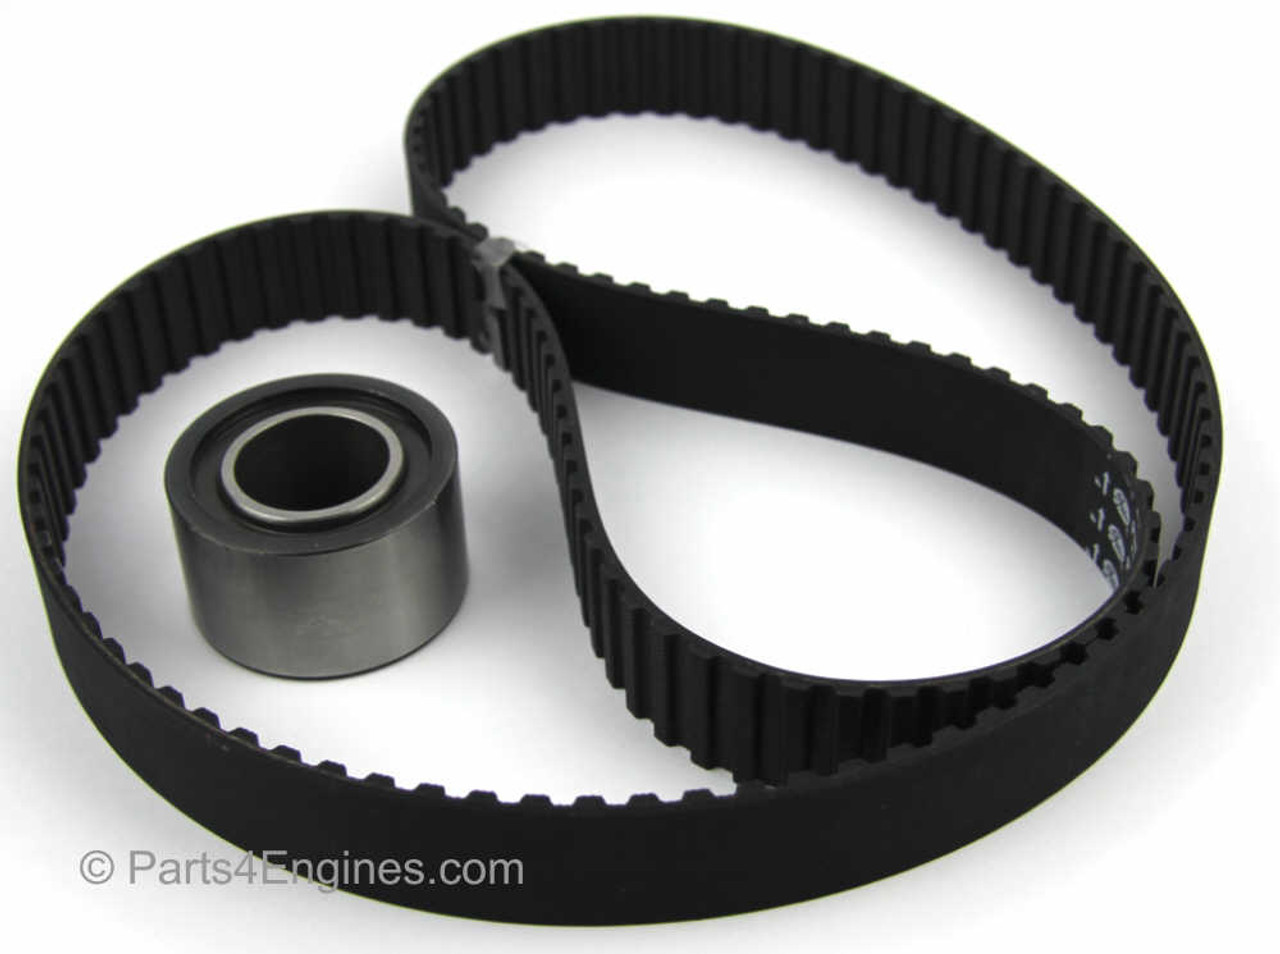 Volvo Penta TMD22 Timing belt kit from parts4engines.com